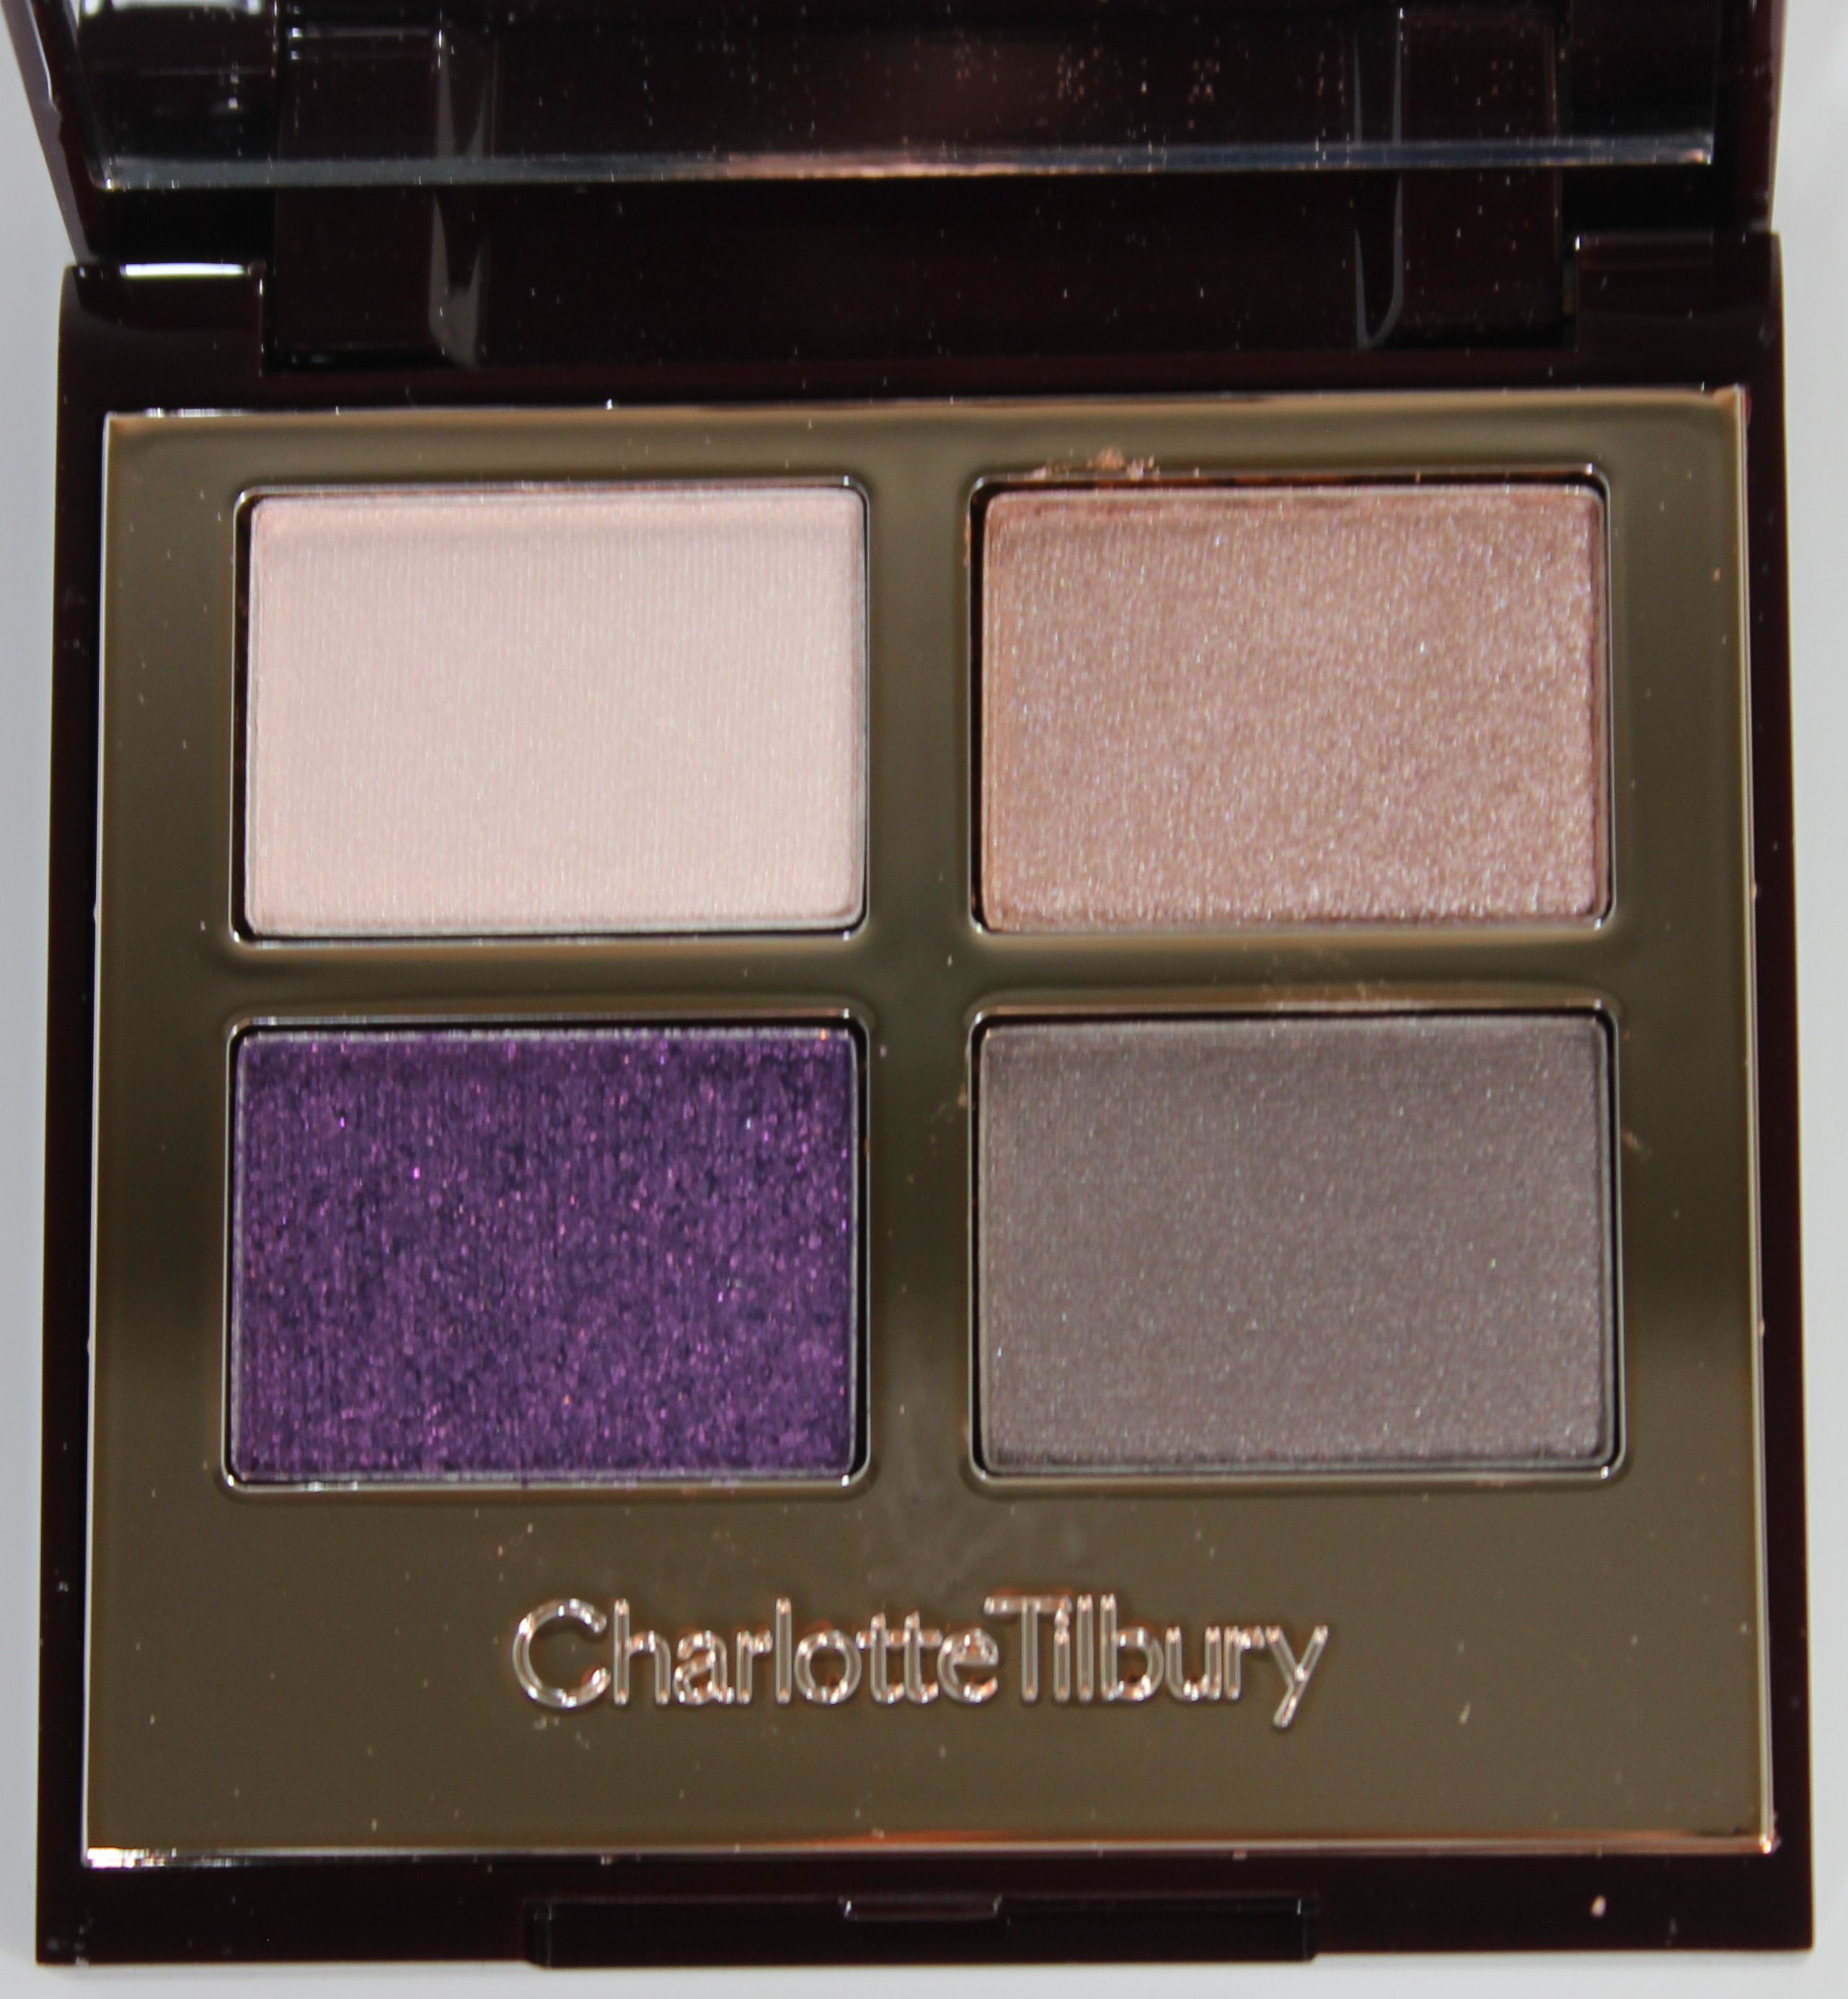 Charlotte Tilbury The Glamour Muse and The Rebel Color-Coded Eyeshadow Palettes graphic